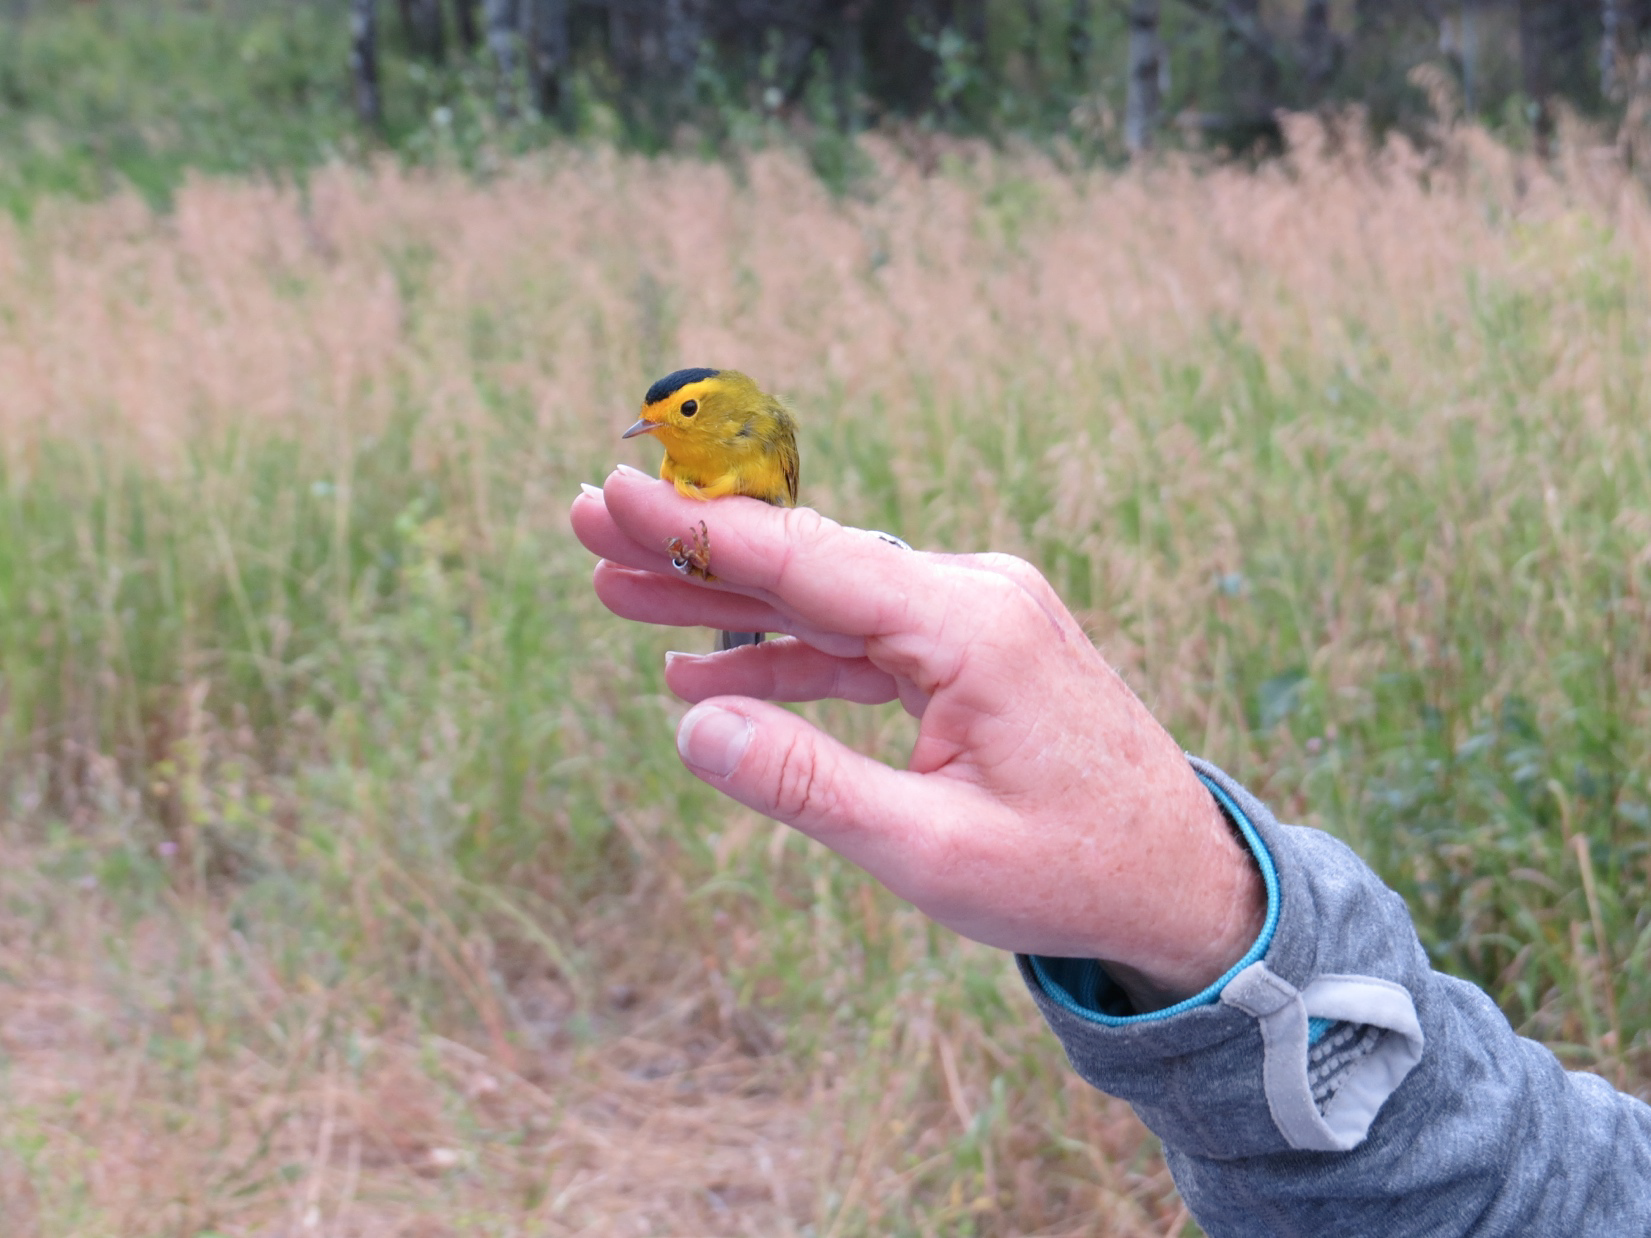 A male Wilson's Warbler was one of the more uncommon warblers captured by the Avian Science Center this fall.